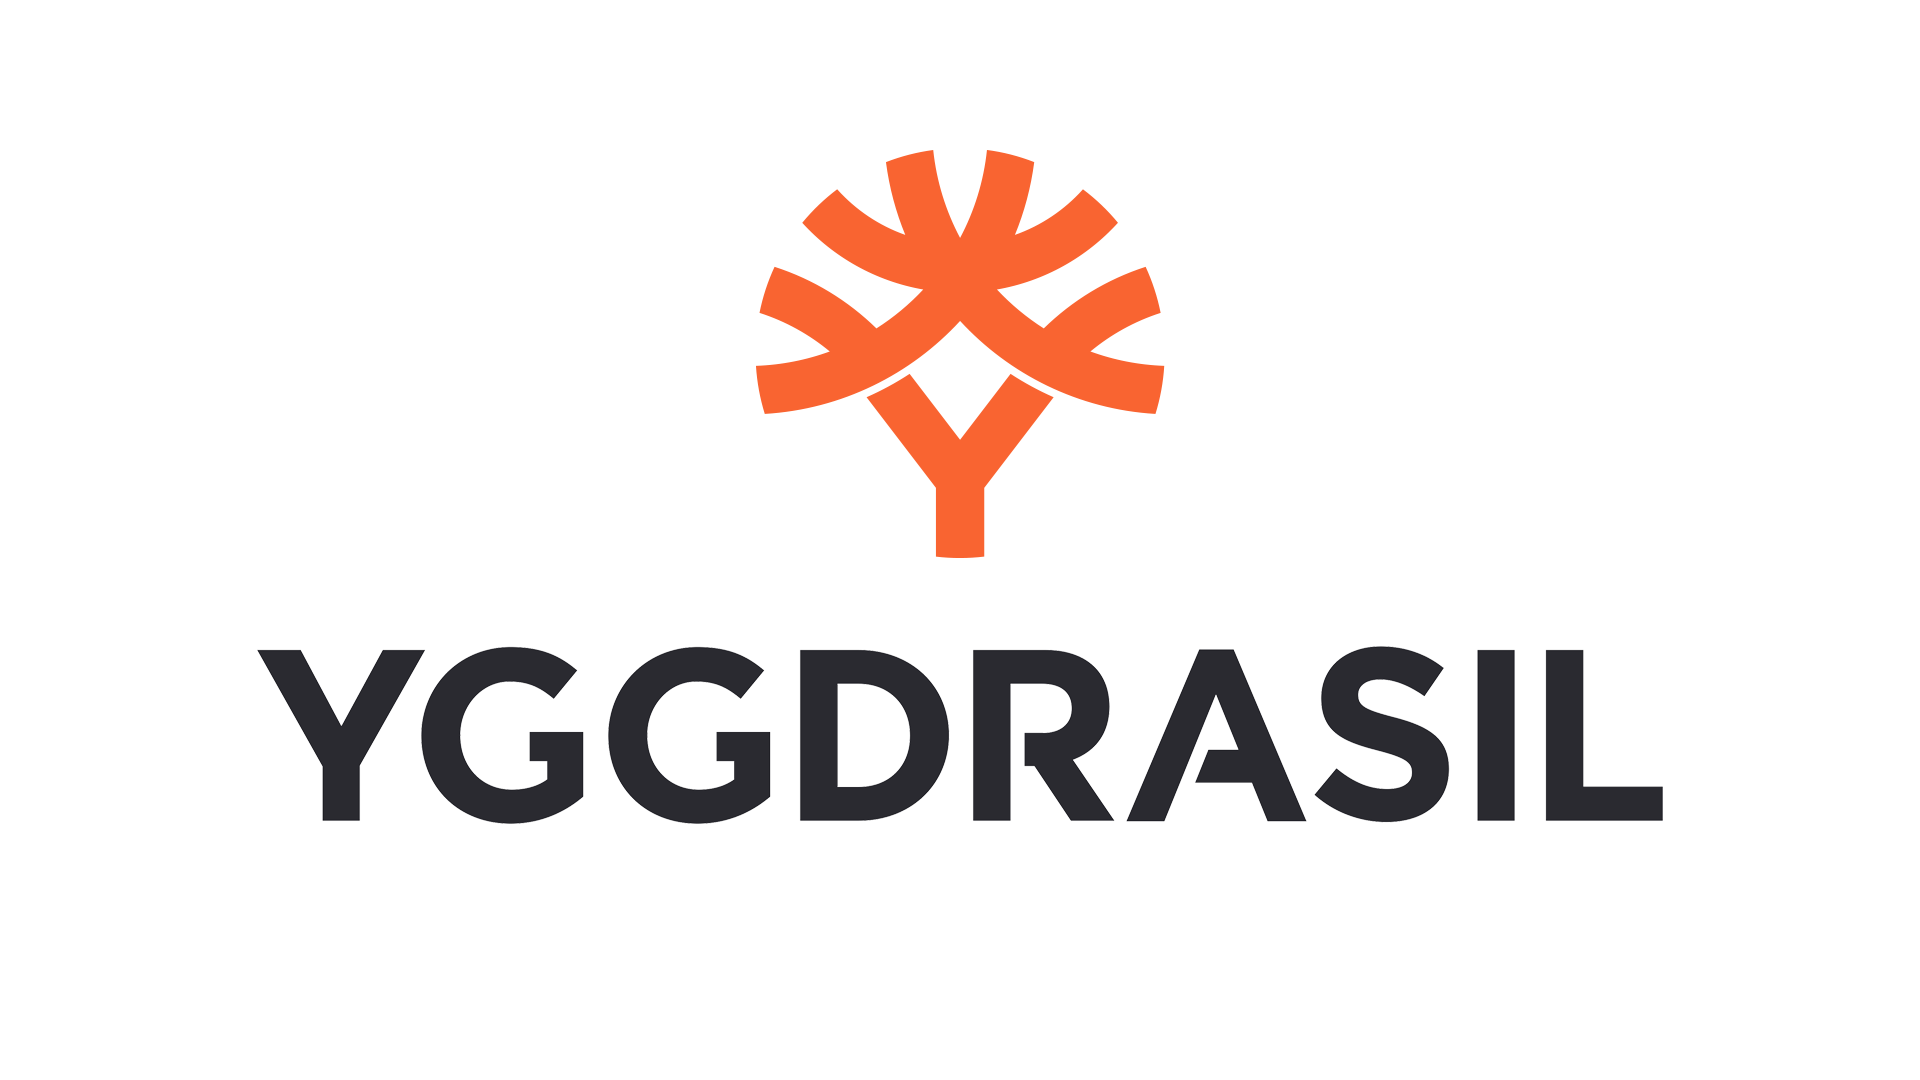 Yggdrasil Gaming software for online casinos